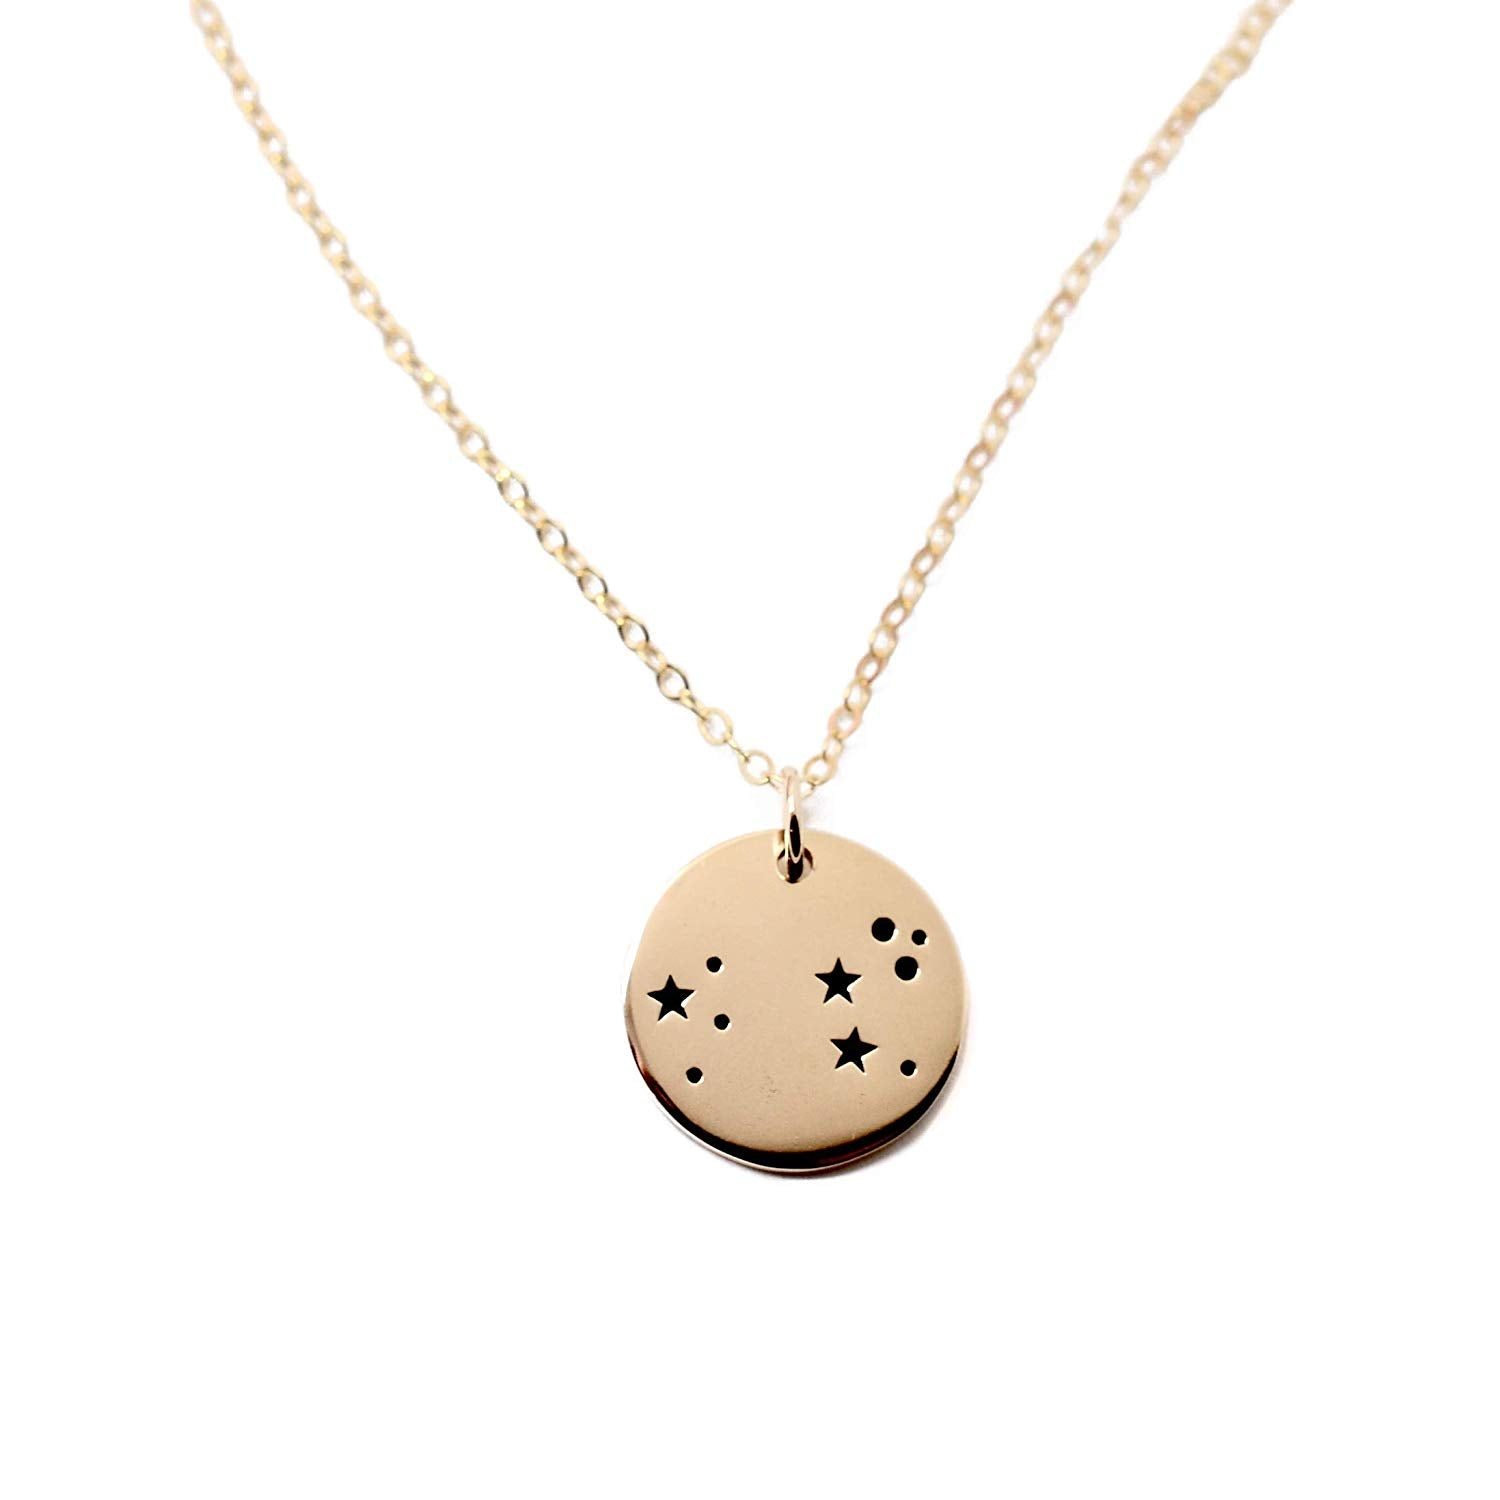 Leo Zodiac Sign 14K Gold Filled Constellation Necklace - Love It Personalized